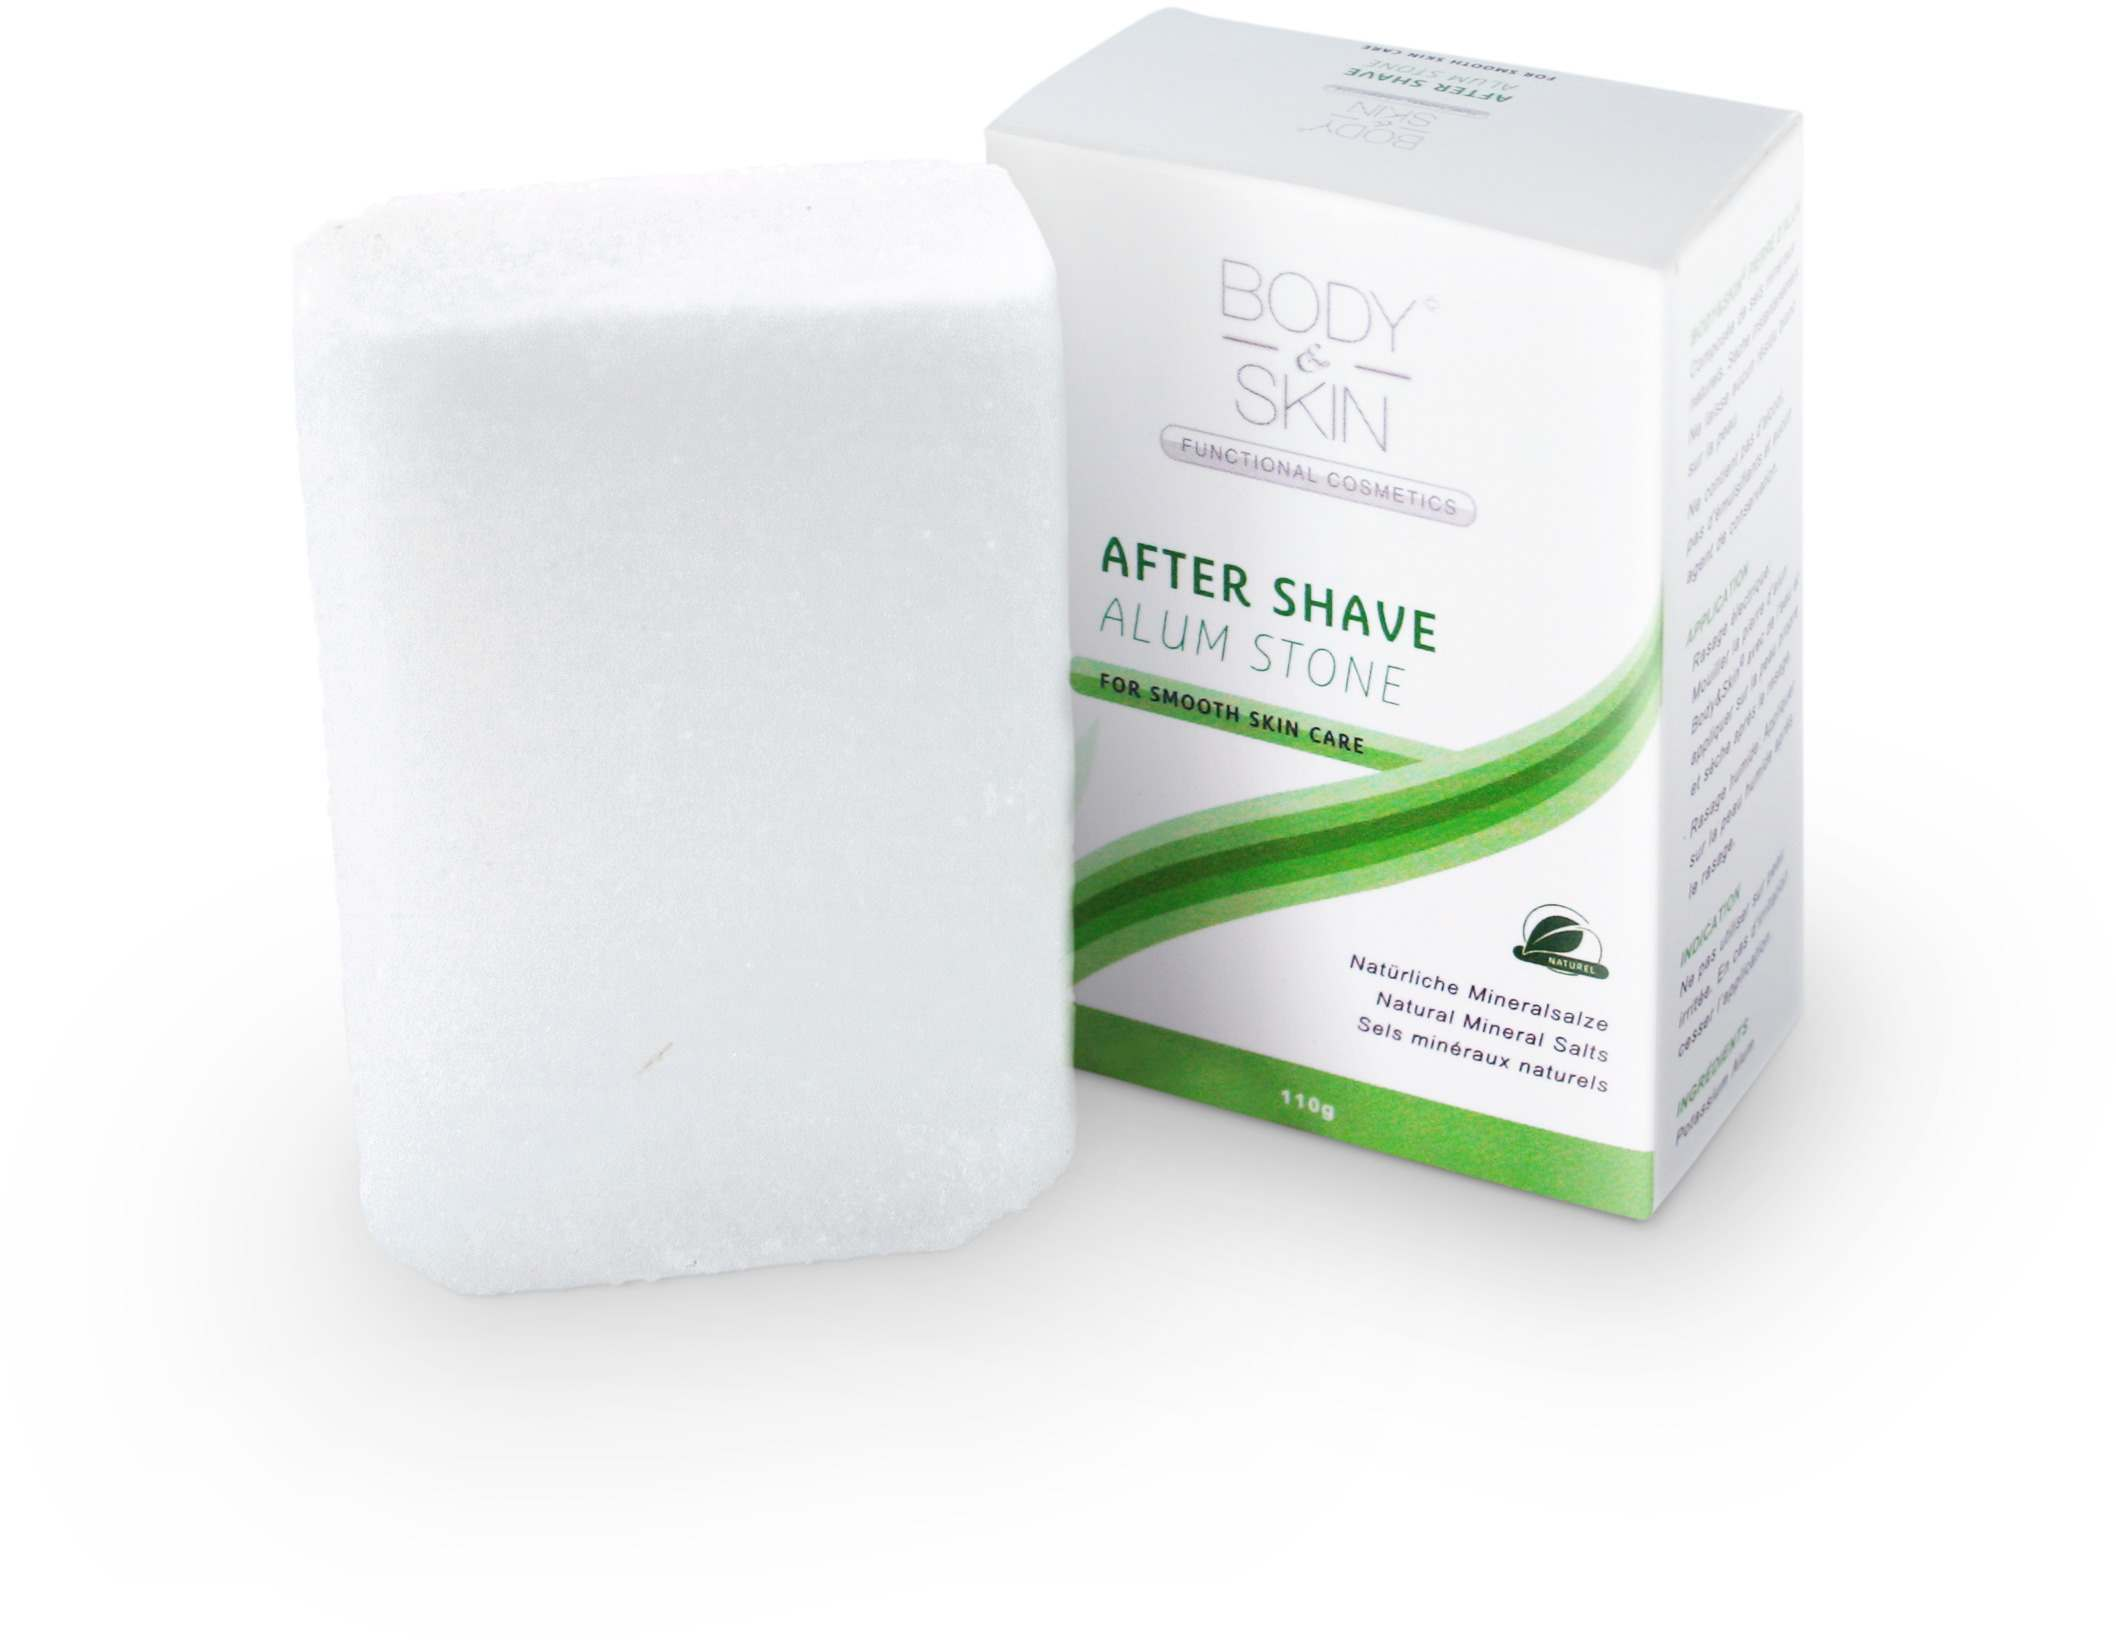 Body & Skin Alum Stone 110g Aftershave